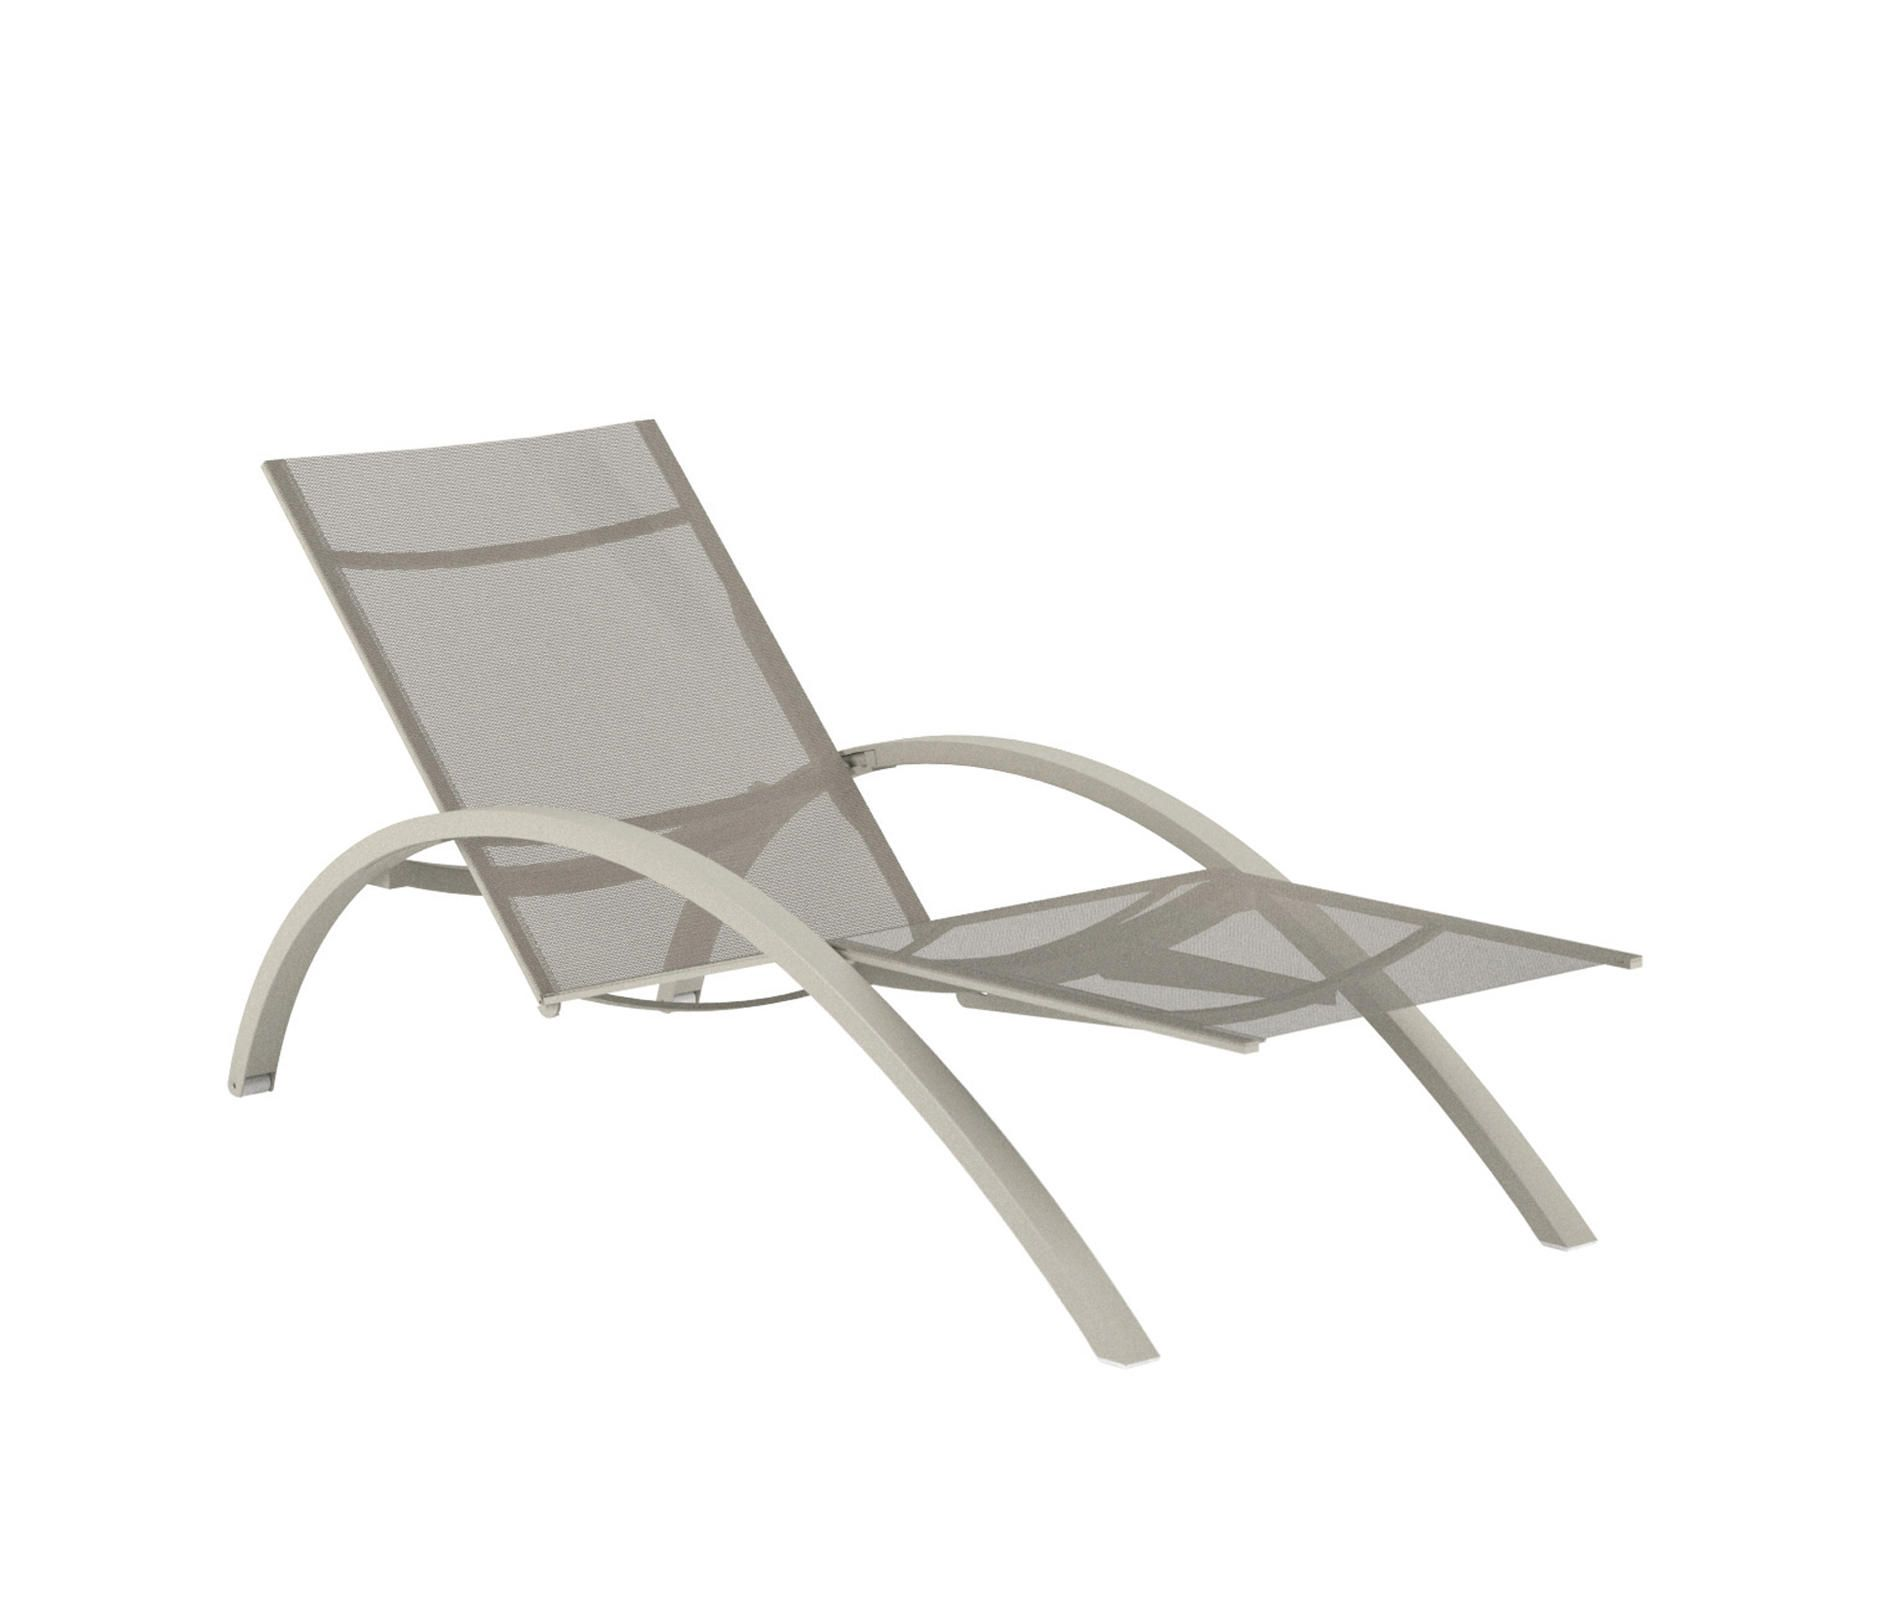 O-ZON OZN 195 T2 LOUNGER - Sun loungers from Royal Botania ...